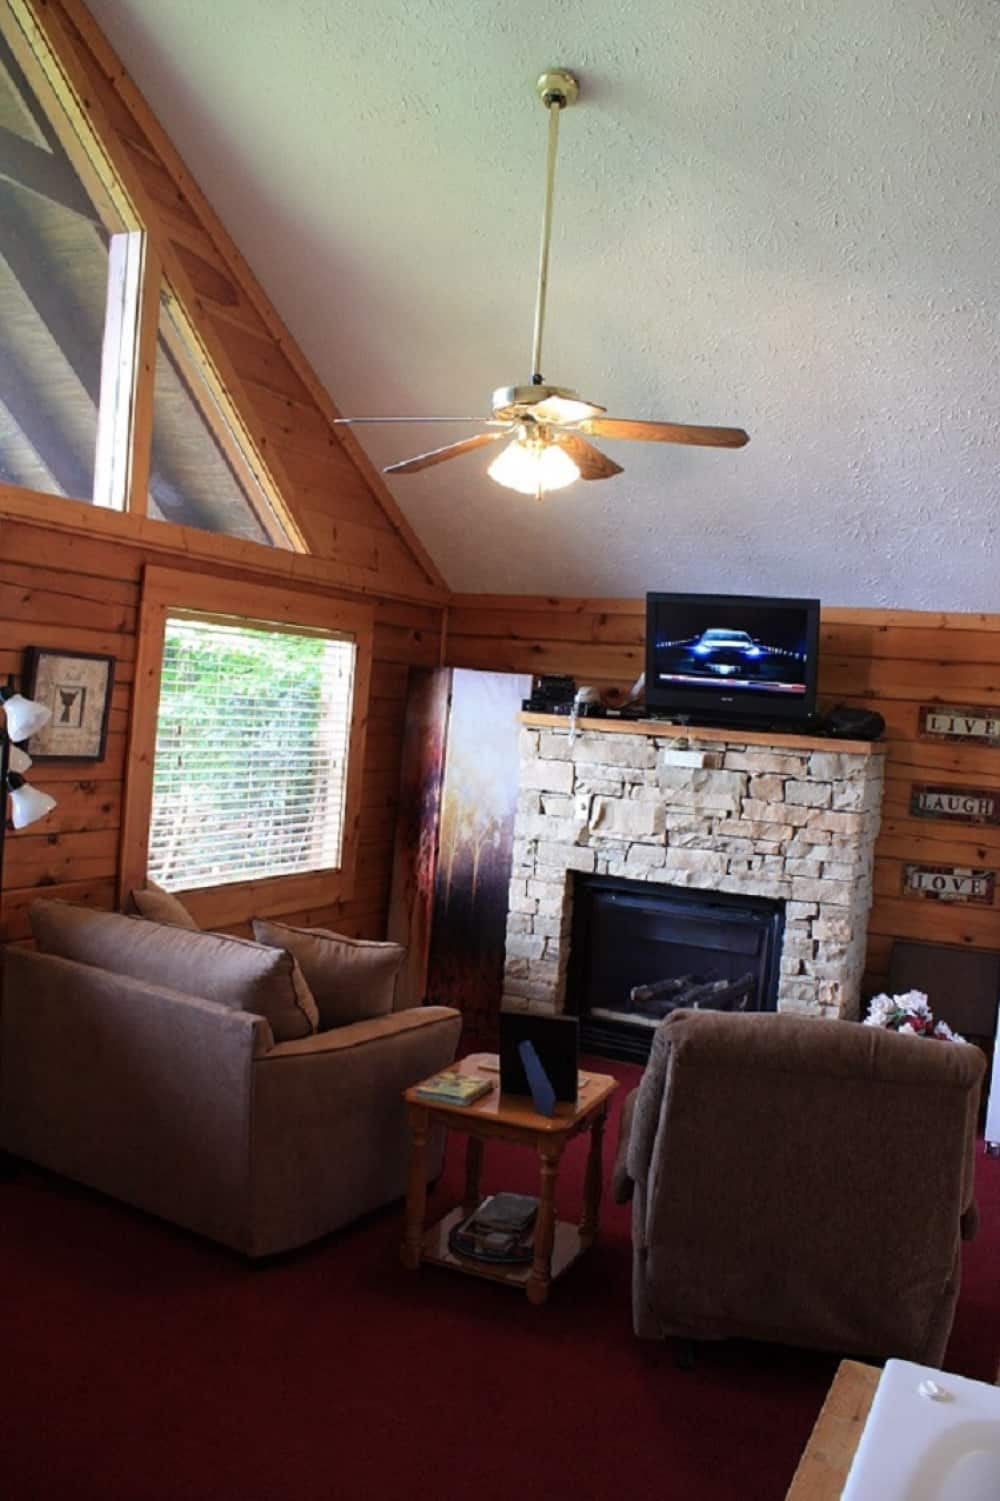 Gas Fireplace with Flat Screen on Cable